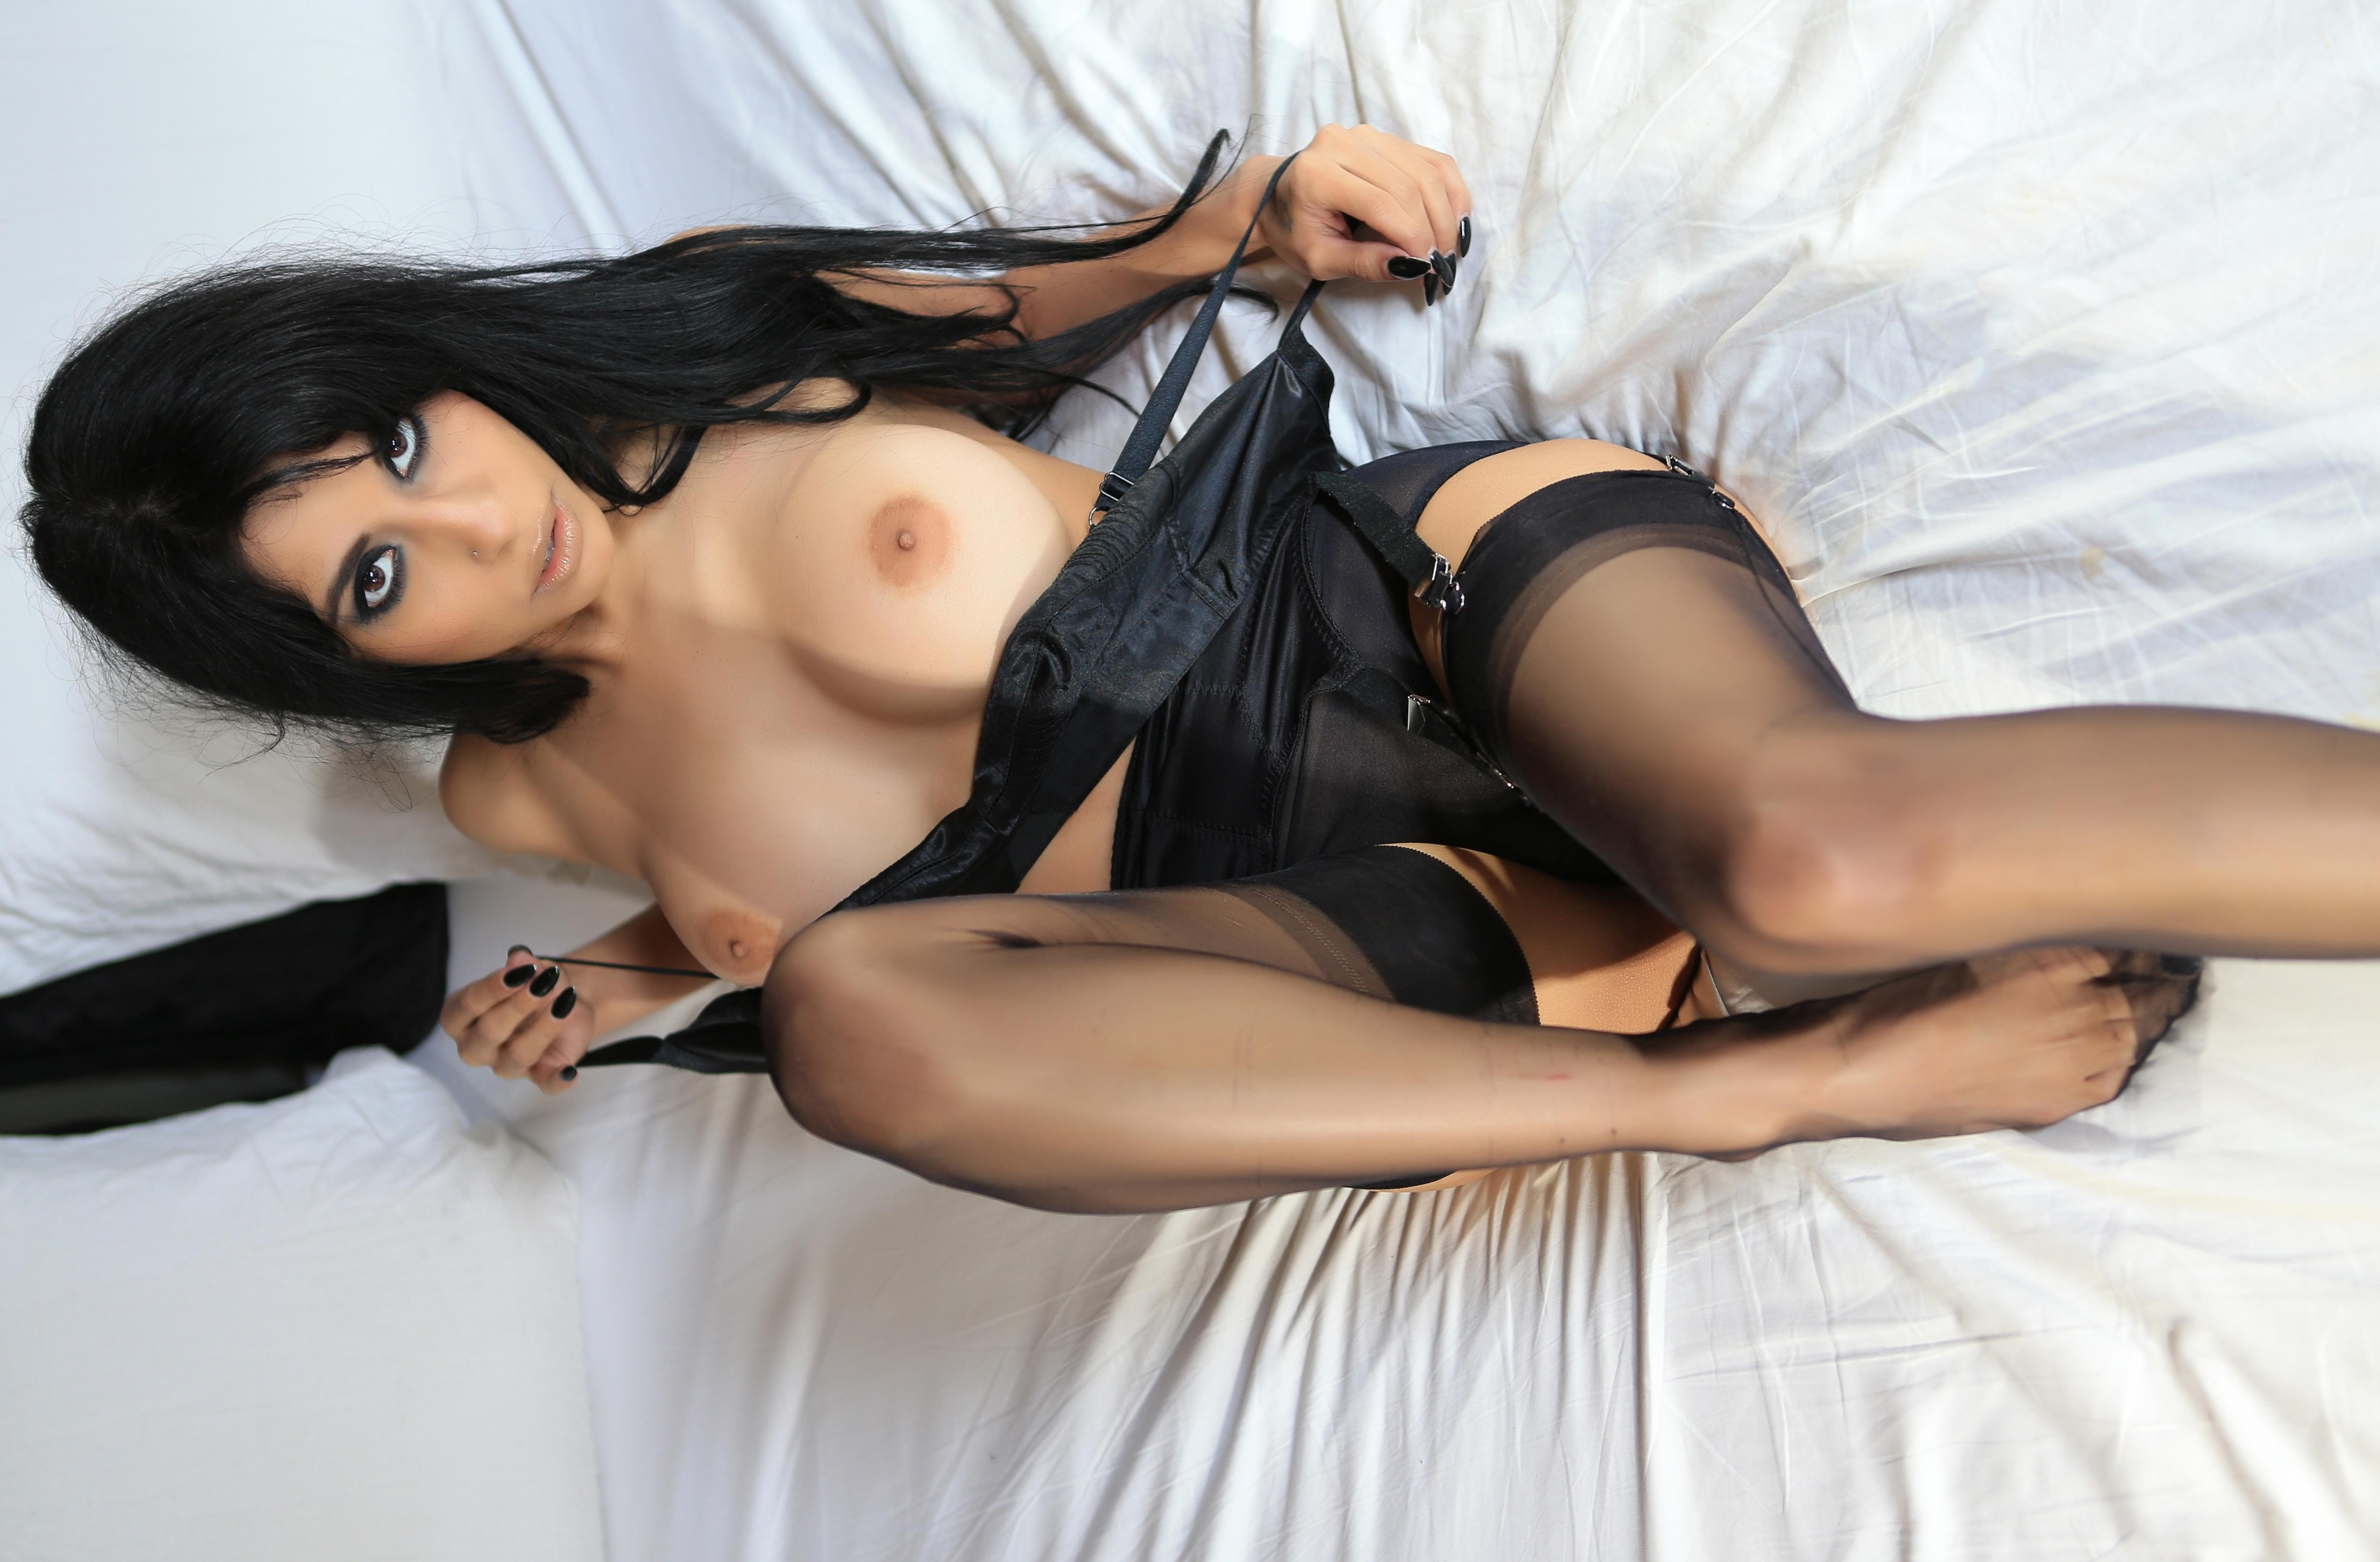 That black hair babe is so horny